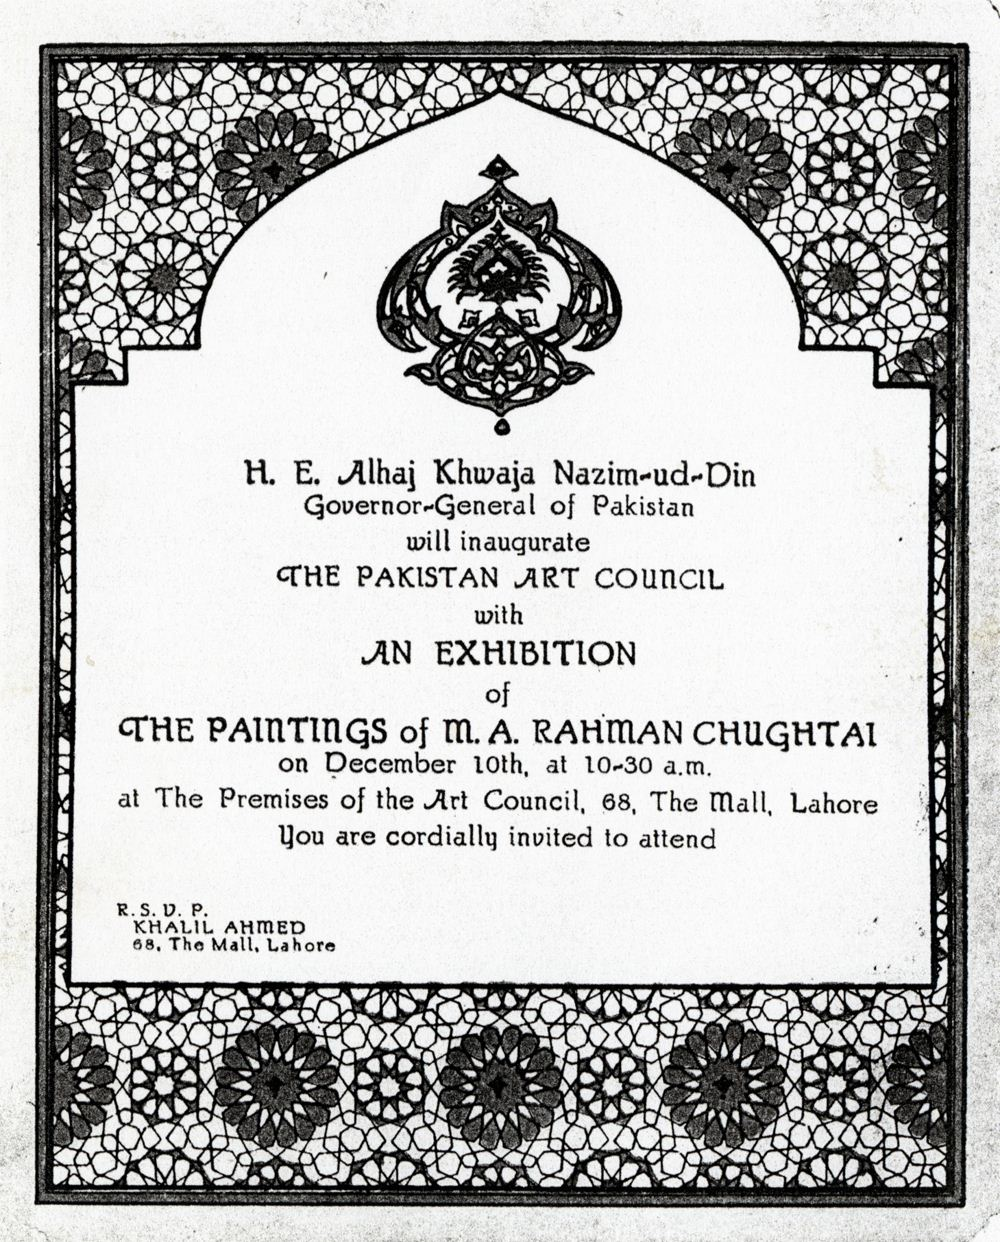 Who Founded Alhamra Lahore Obviously M A Rahman Chughtai